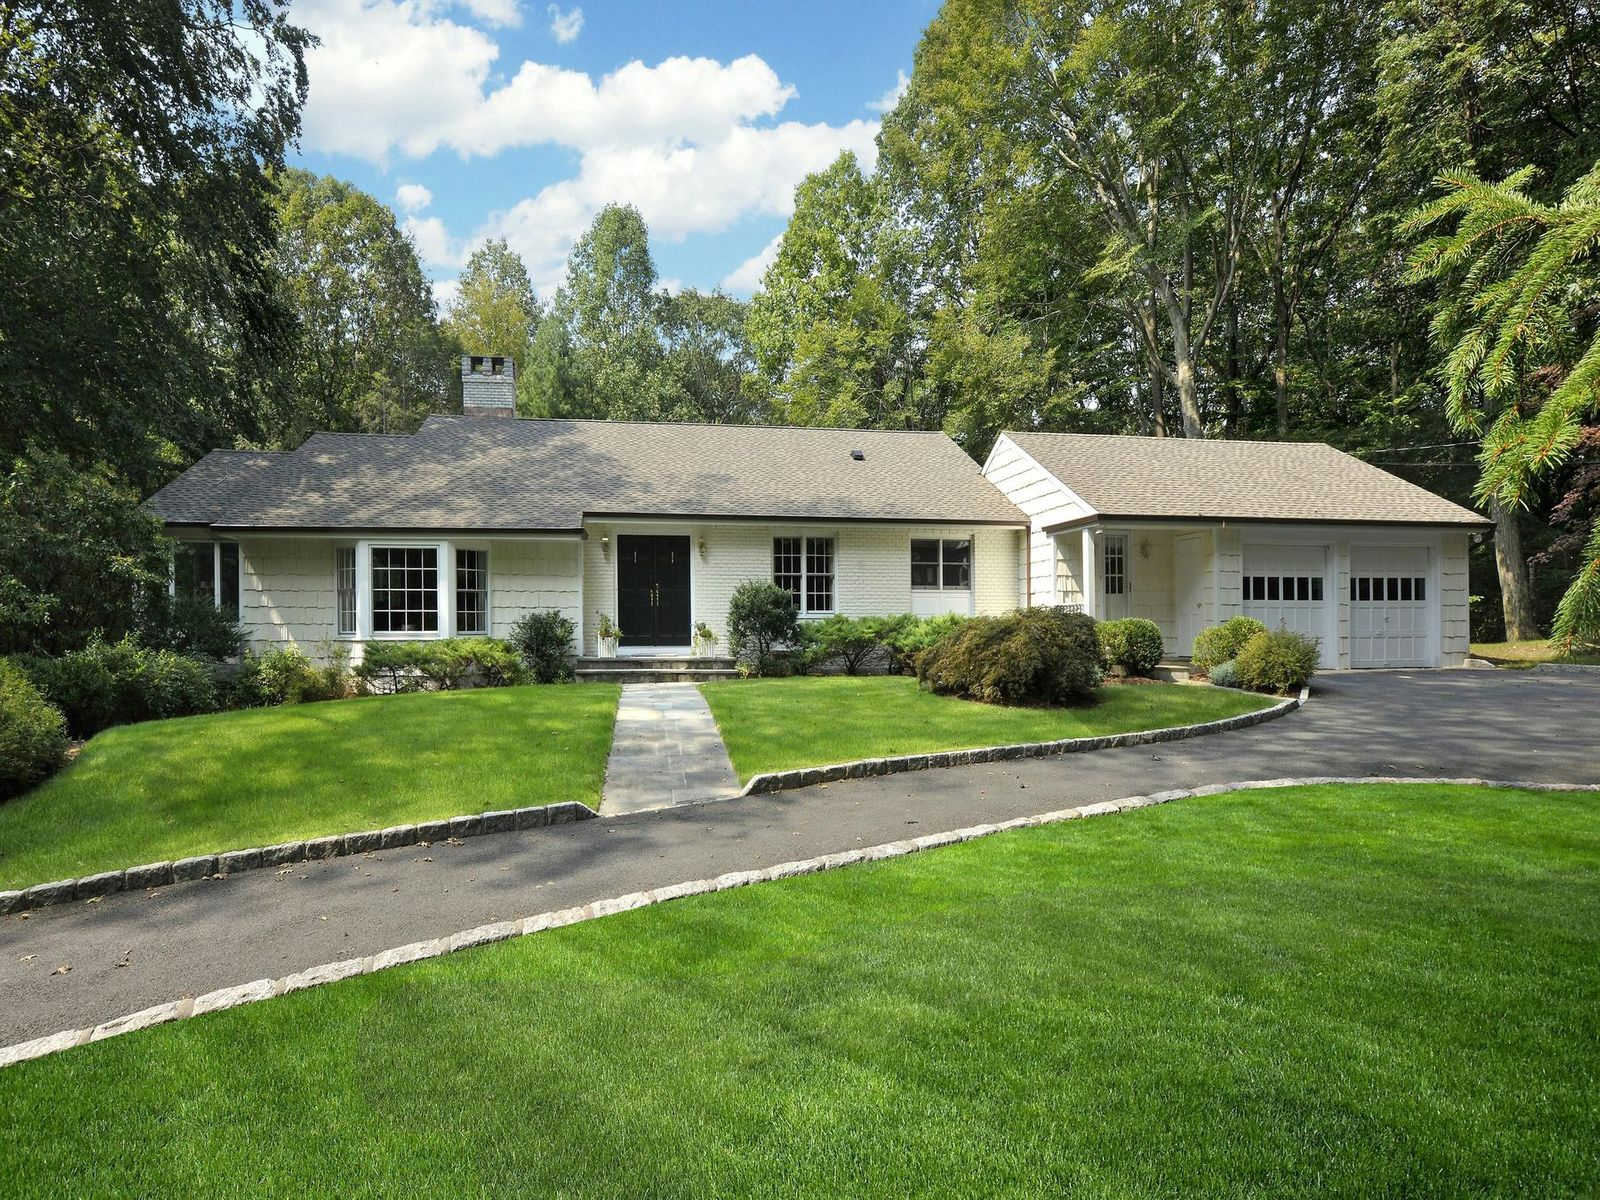 Idyllic Retreat, Greenwich CT Single Family Home - Greenwich Real Estate